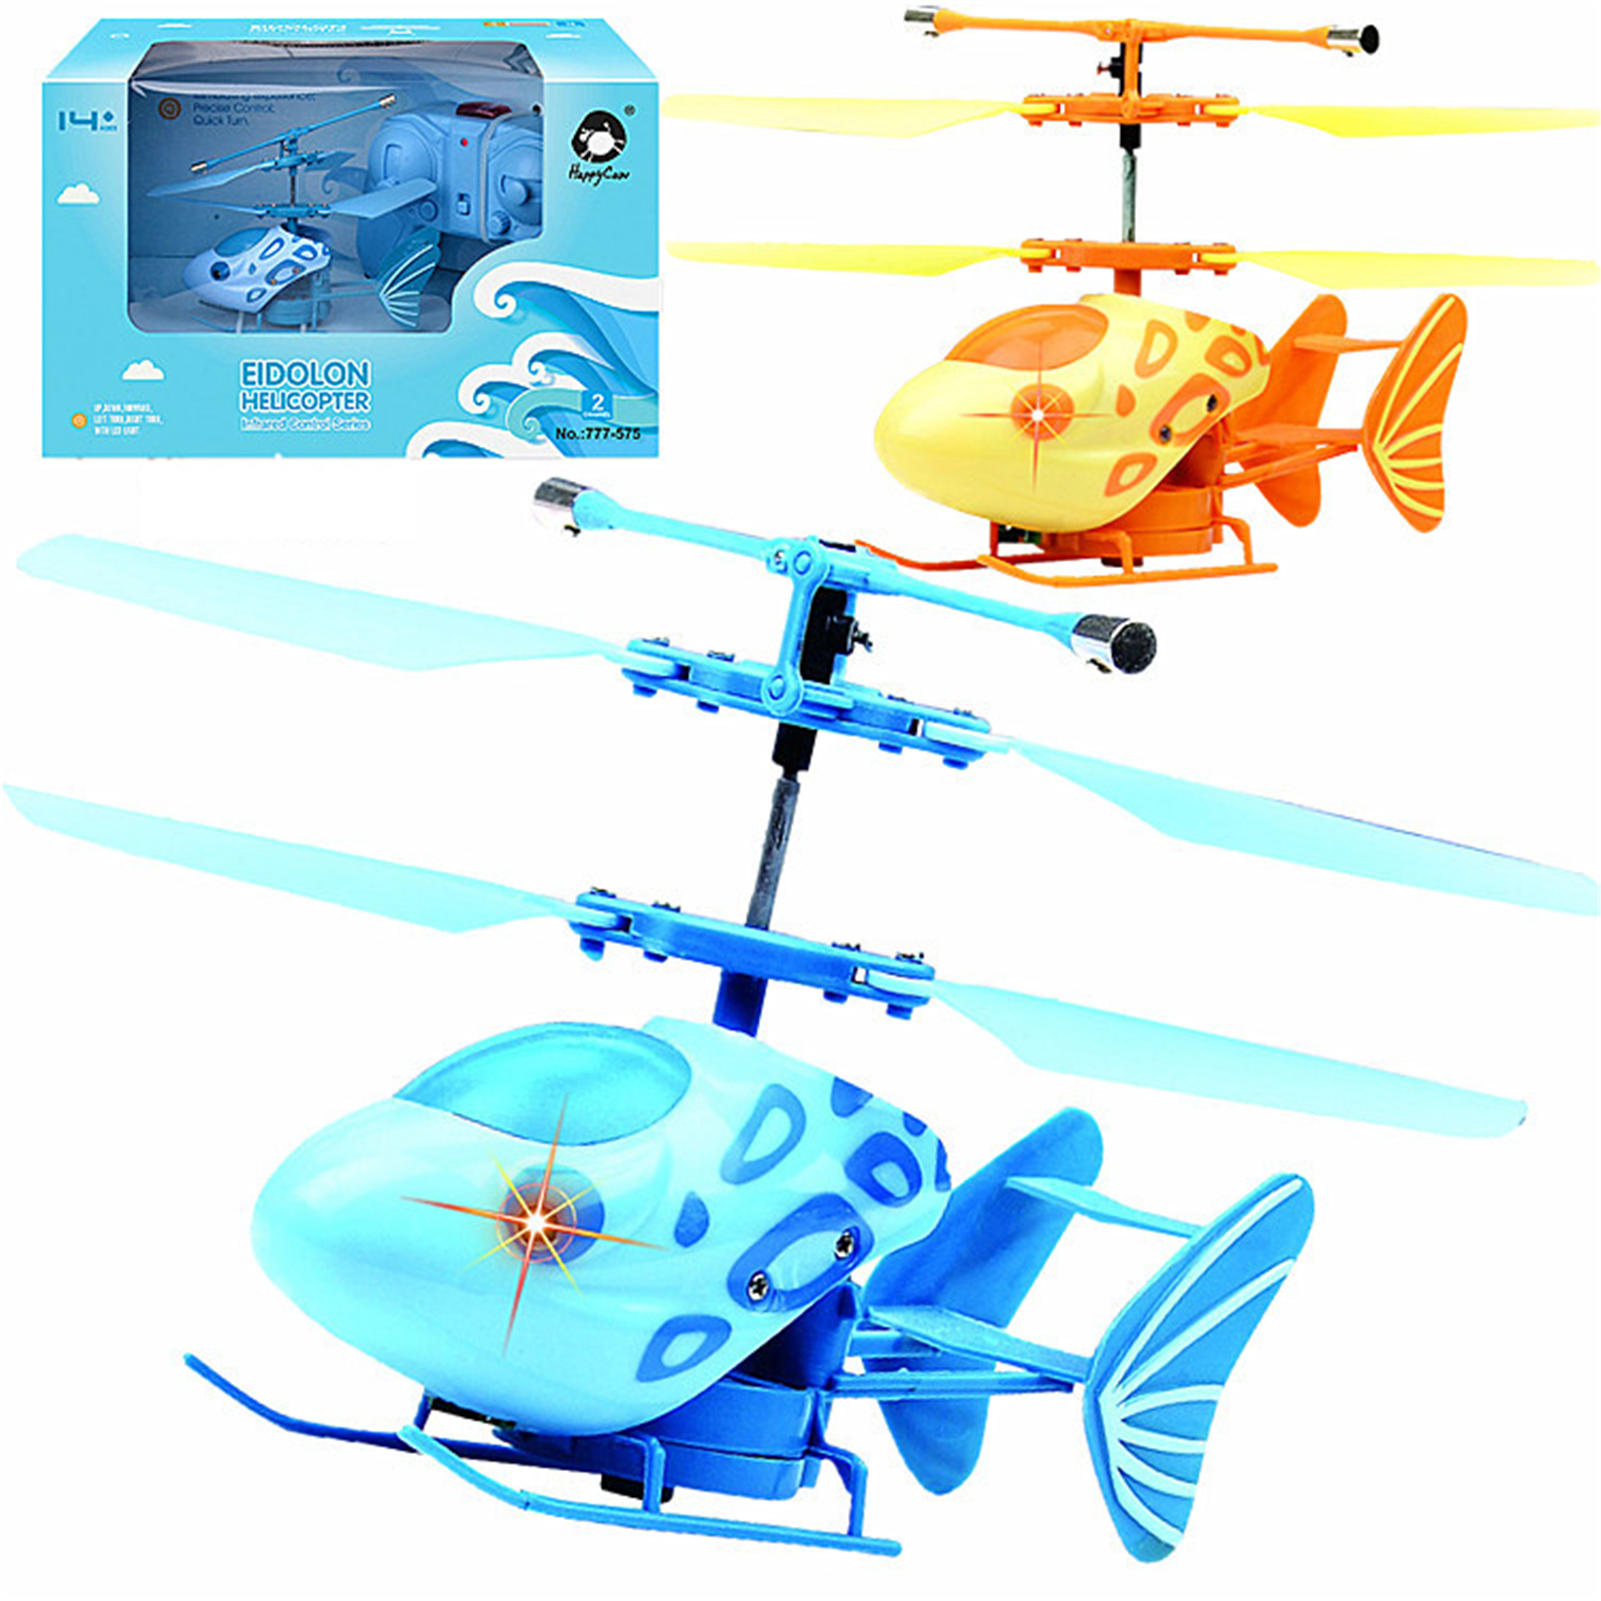 2.4G RC Helicopter with Gyroscope Light Kid Airplane Model Toys for Children Adults Birthday Gifts